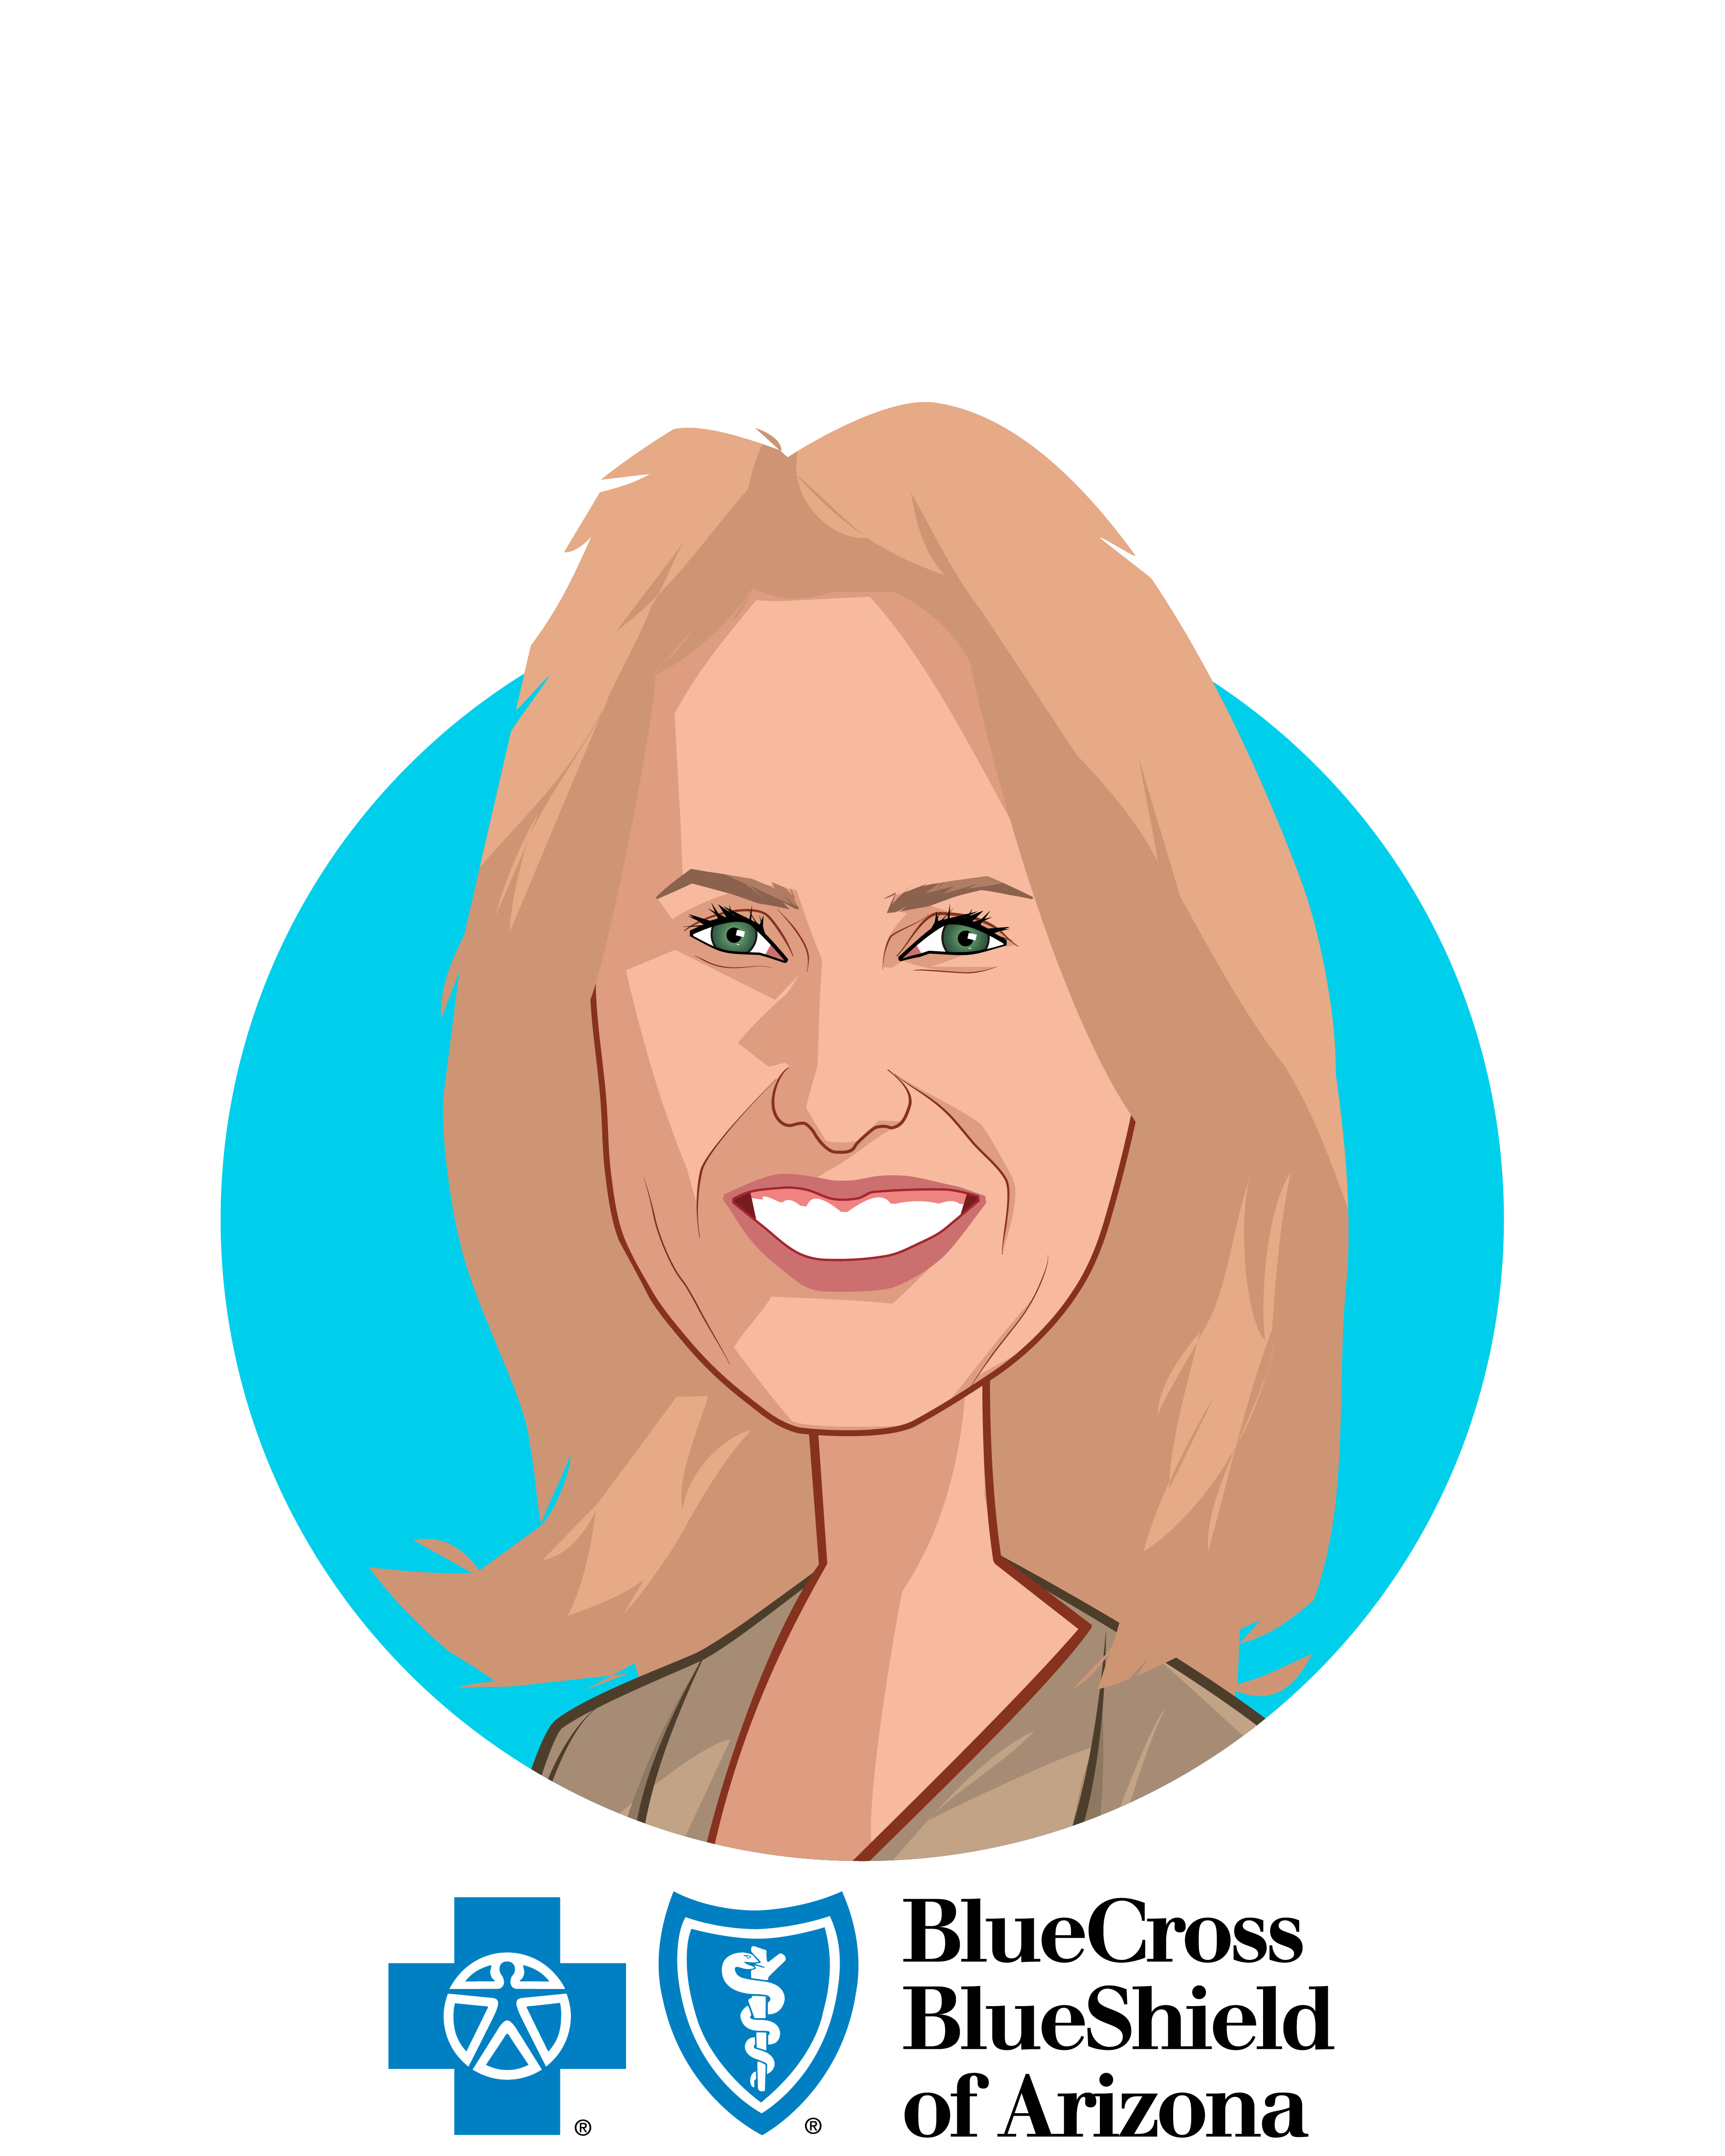 Main caricature of Pam Kehaly, who is speaking at HLTH and is President & CEO at Blue Cross Blue Shield of Arizona